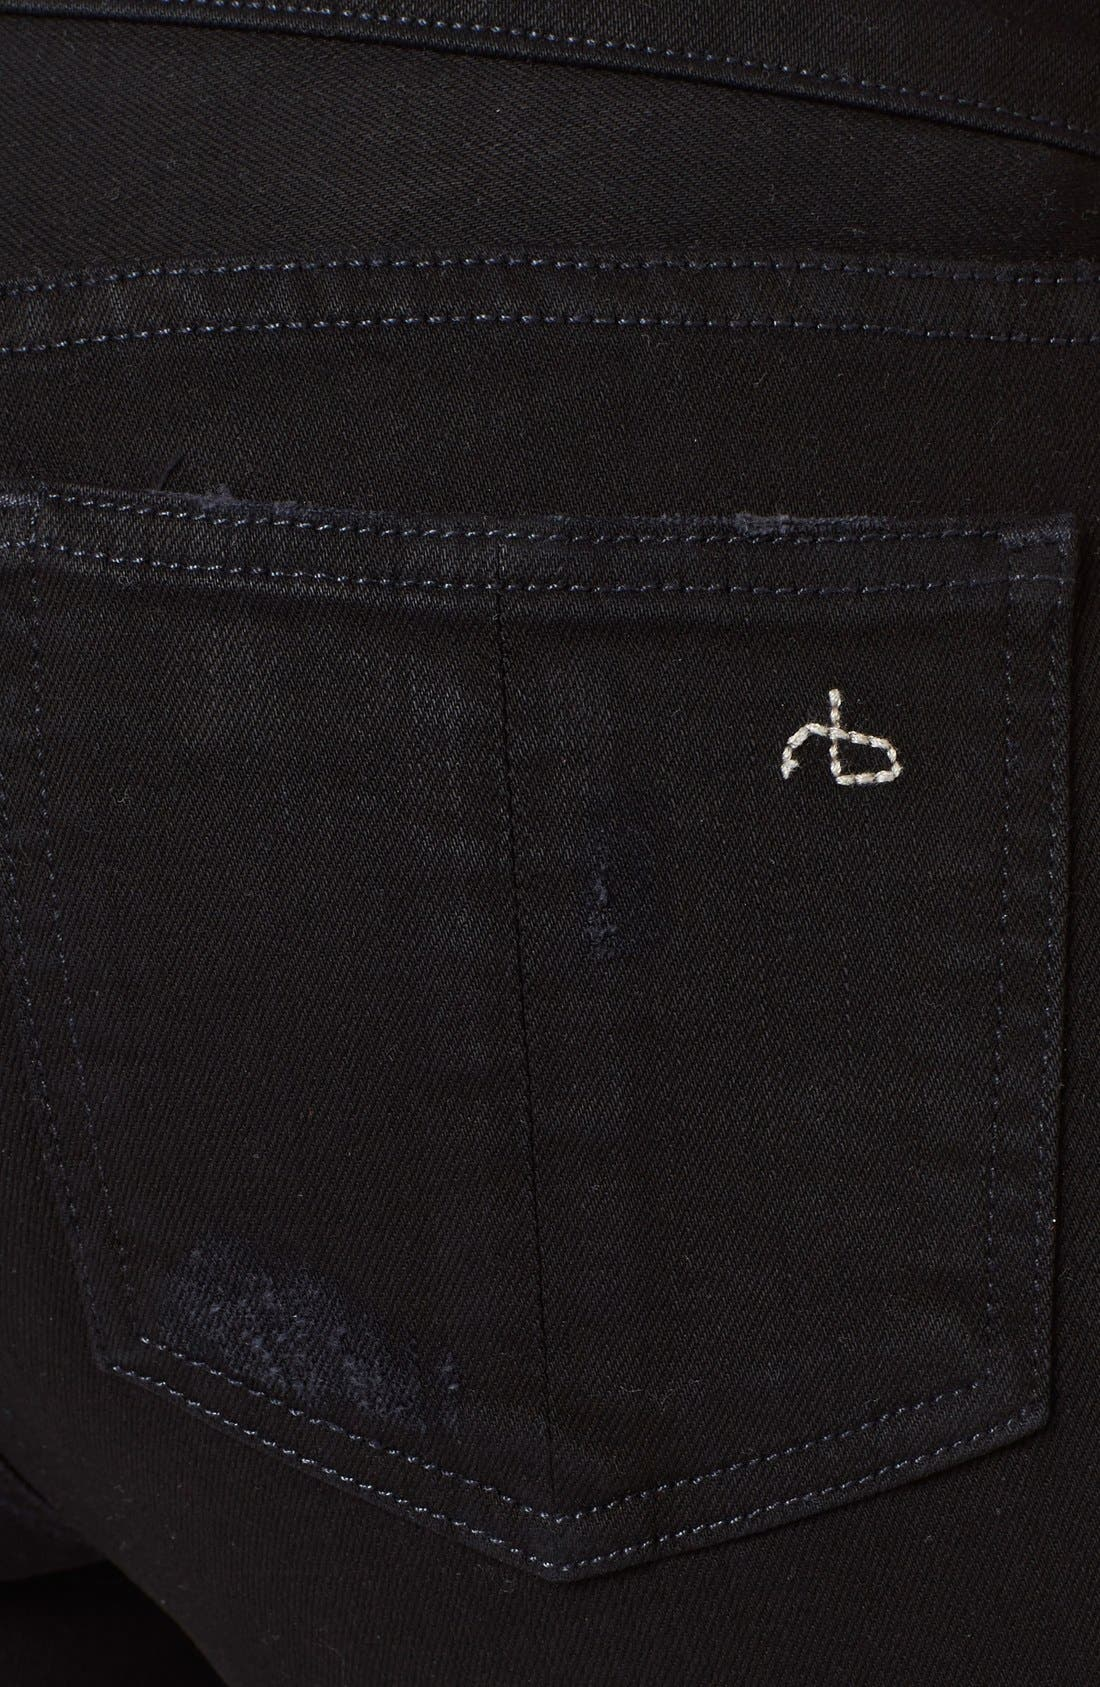 'The Skinny' Stretch Jeans,                             Alternate thumbnail 16, color,